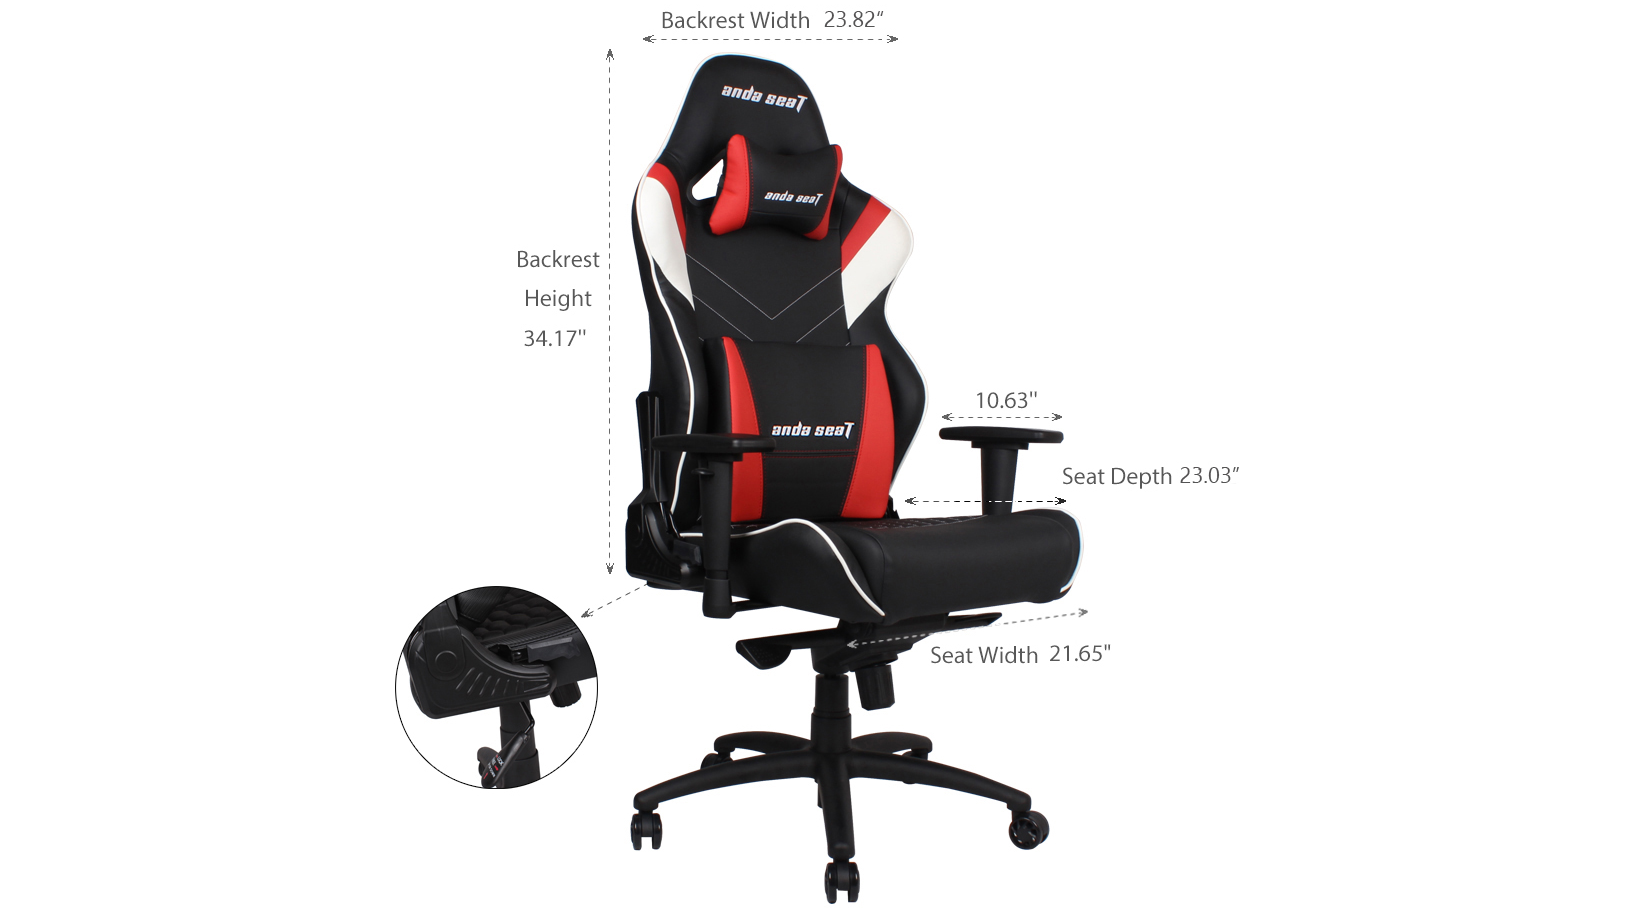 Product_奇妙_Assassin King Series Premium Gaming Chair